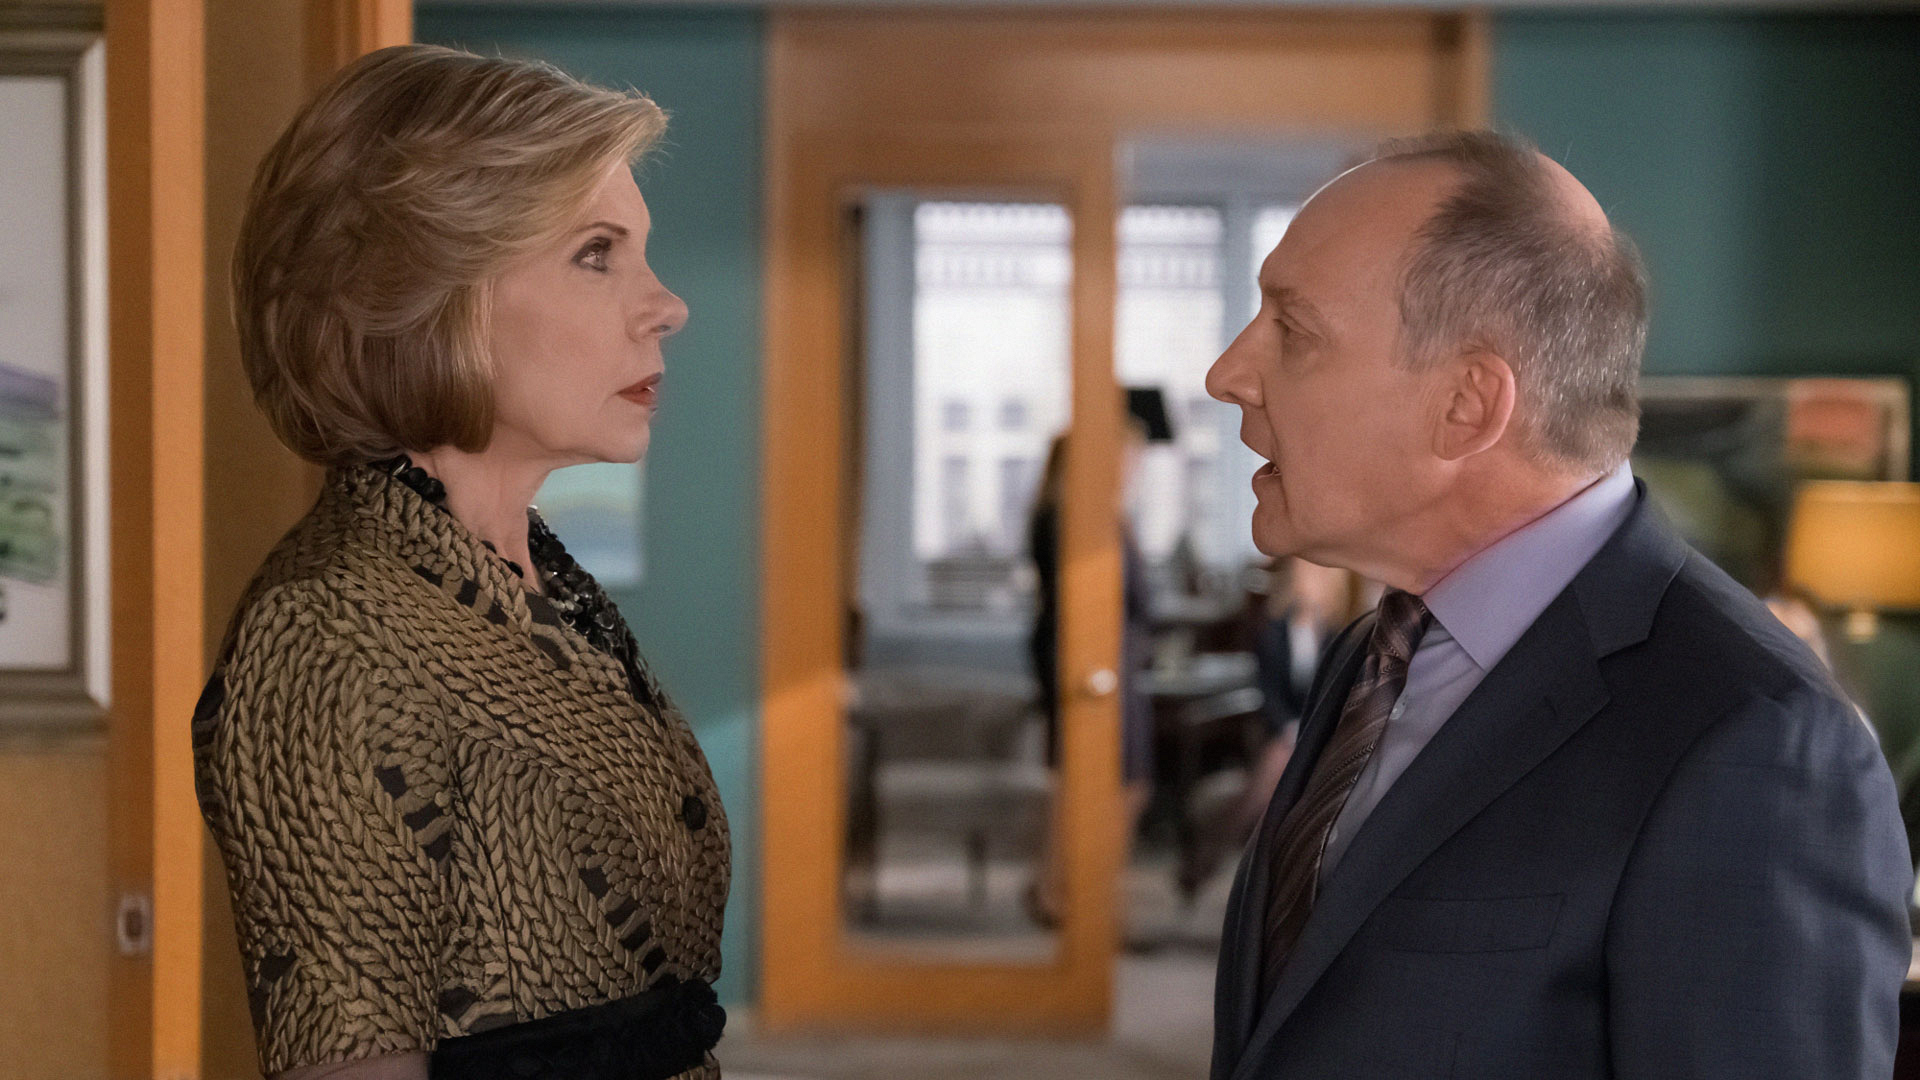 Diane and David get in an argument at the firm.